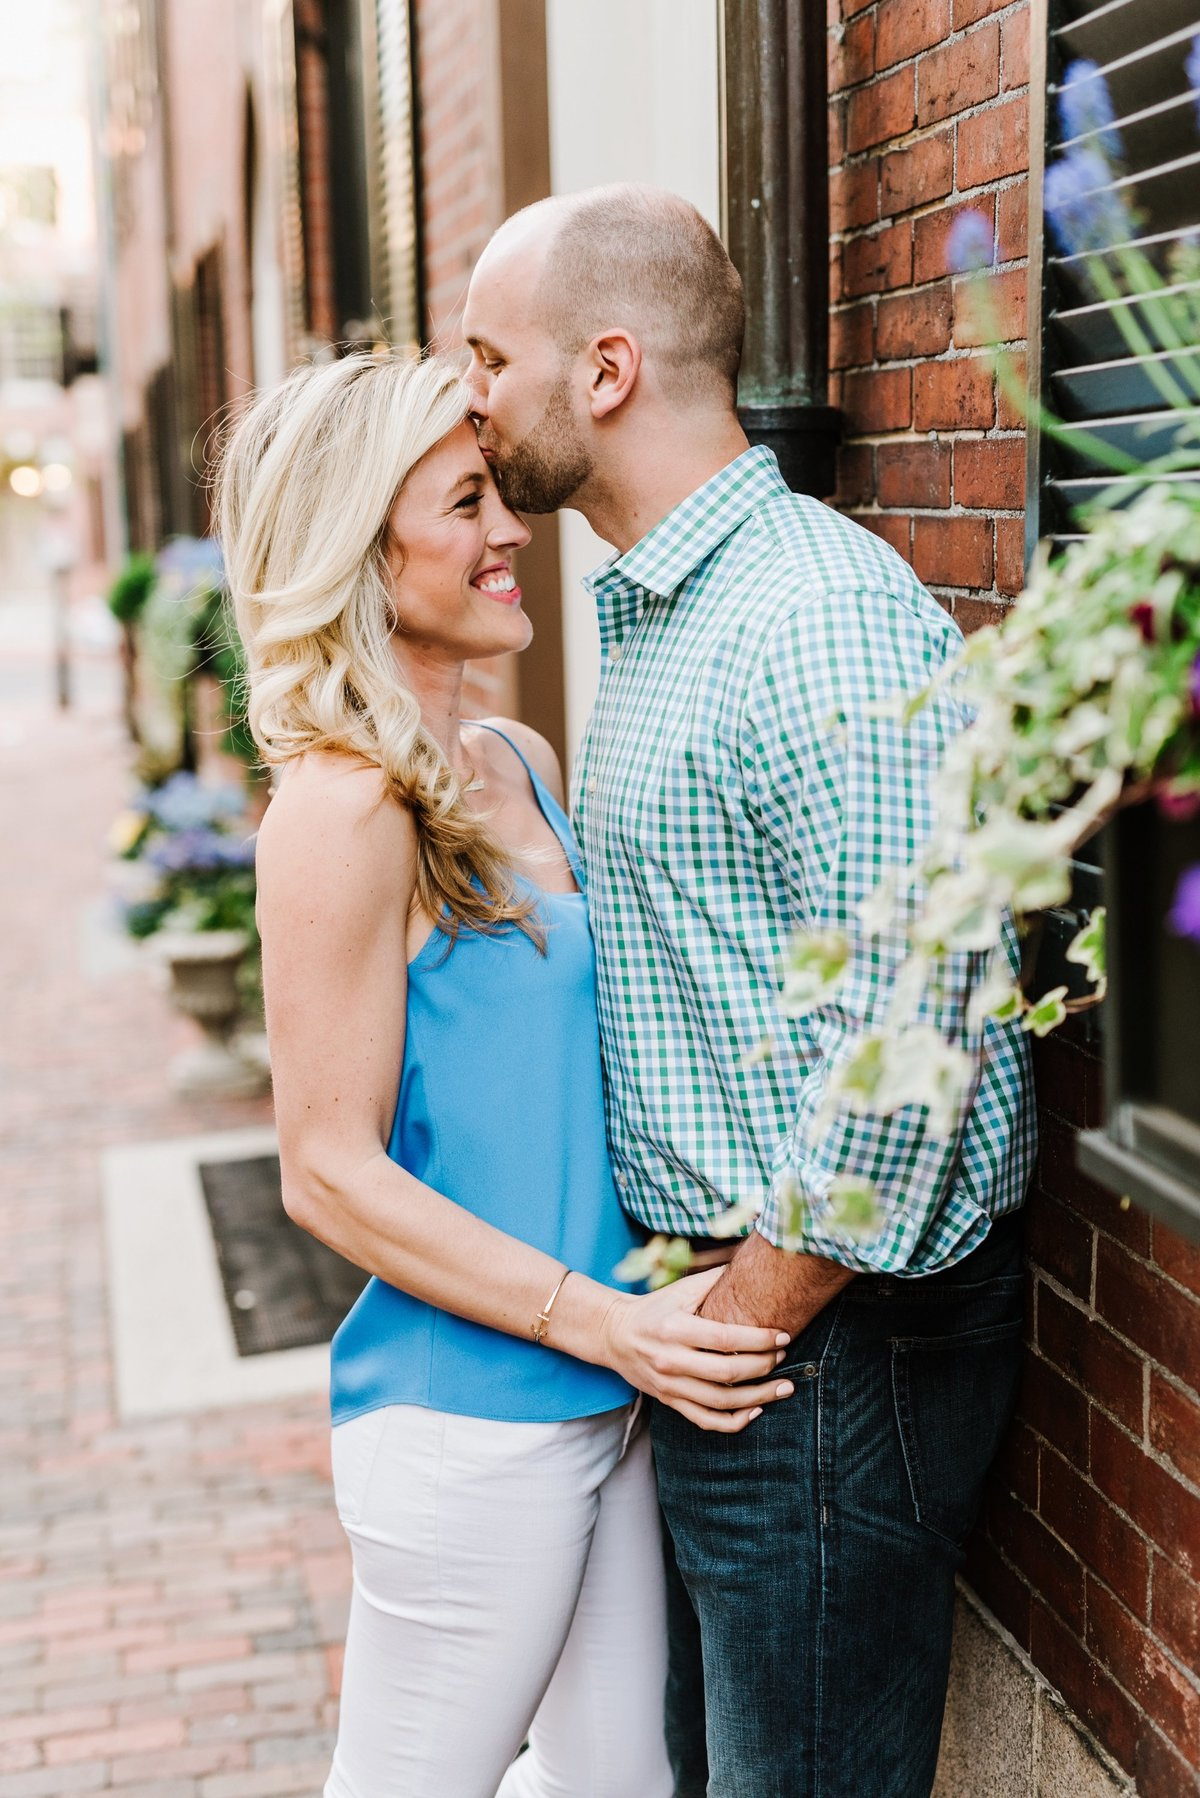 seaport-district-beacon-hill-engagement-session-boston-wedding-photographer-photo_0011